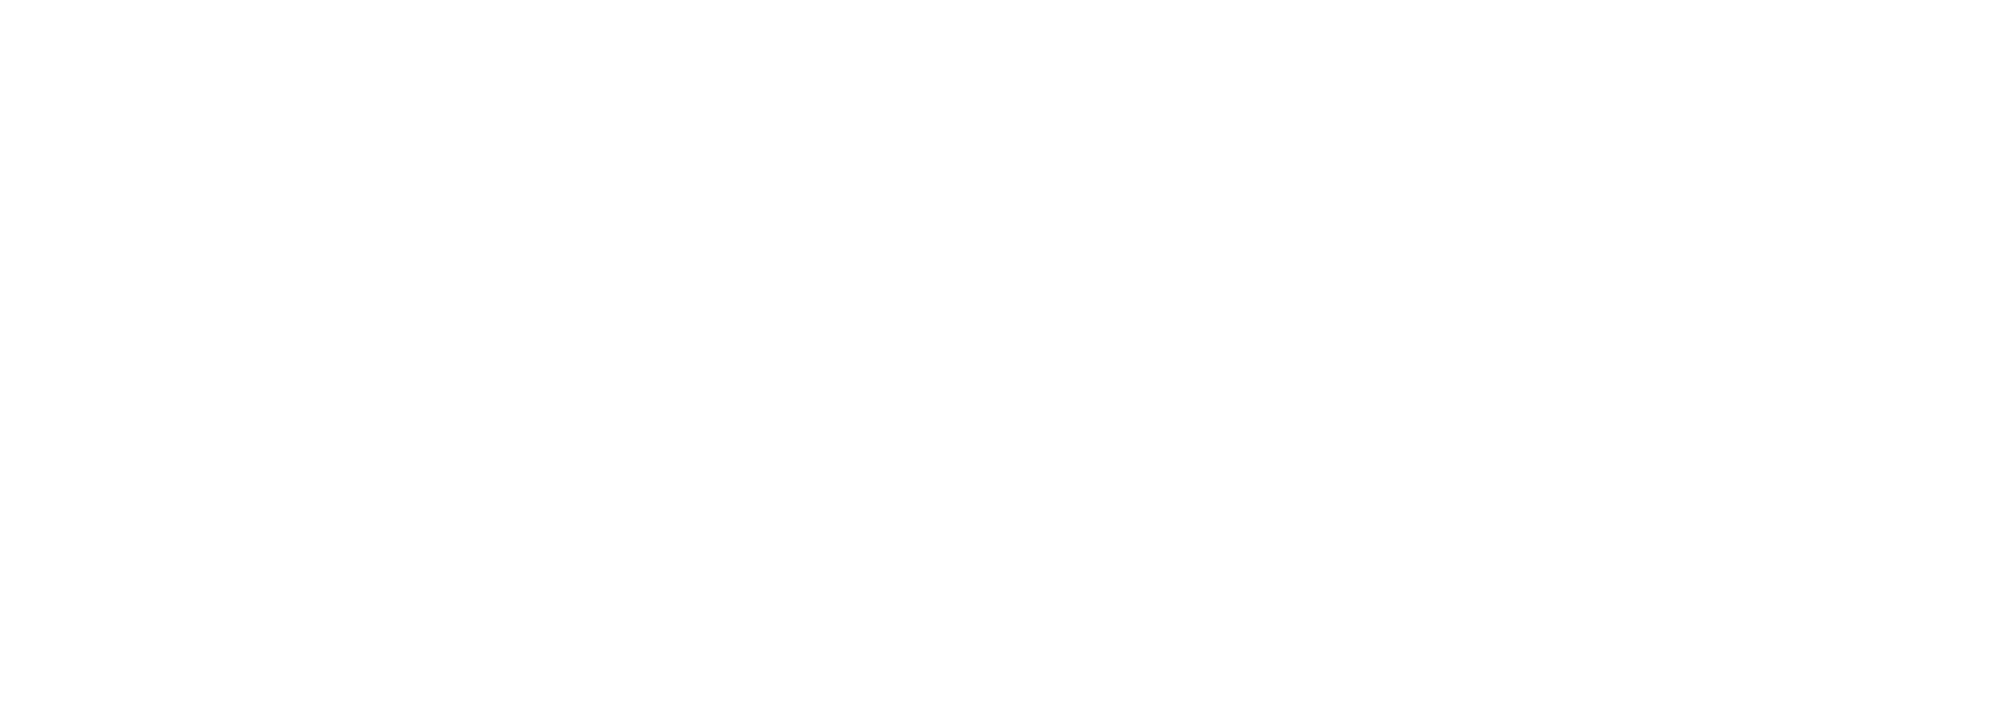 logo_barracuda_main_white